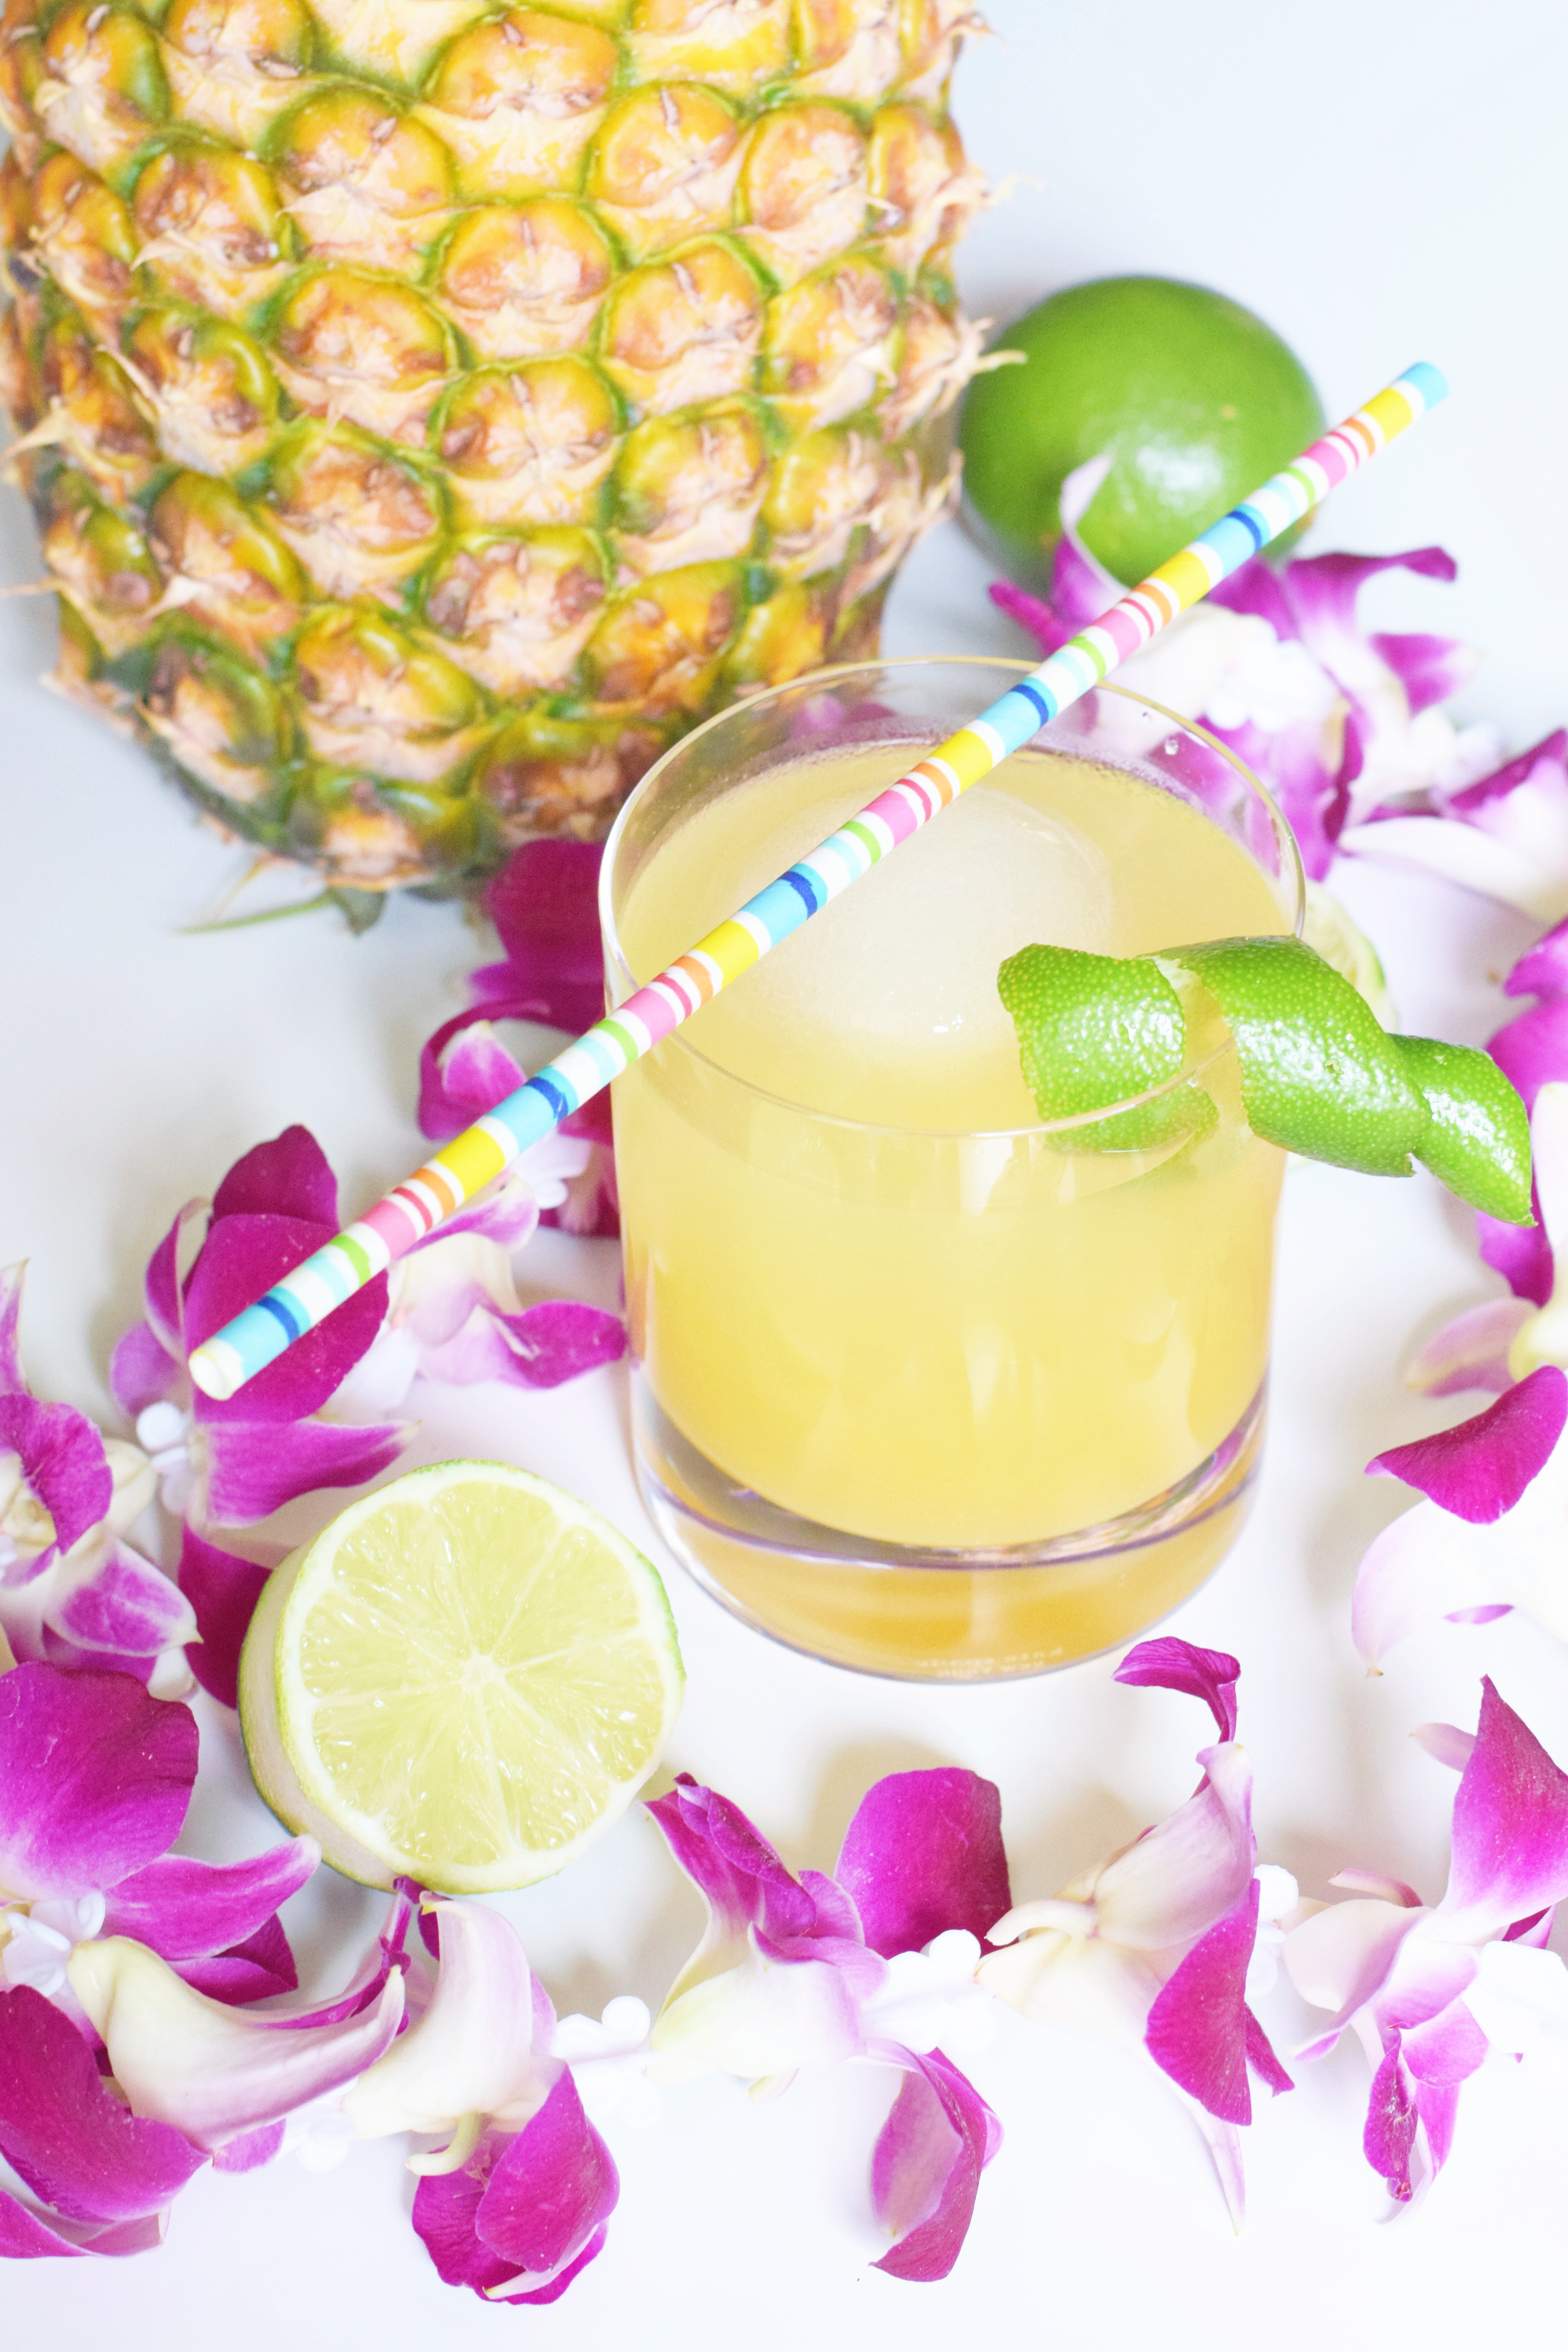 Pineapple Poolboy Summer Cocktail - Summer cocktail recipe - Easy Cocktail - Pineapple Cocktail - 7UP Cocktail - Cocktail Recipe For Summer Party - Girly Cocktail - Citrus Cocktail - Alcoholic Beverage - Refreshing Summer Cocktail Recipe - Communikait by Kait Hanson